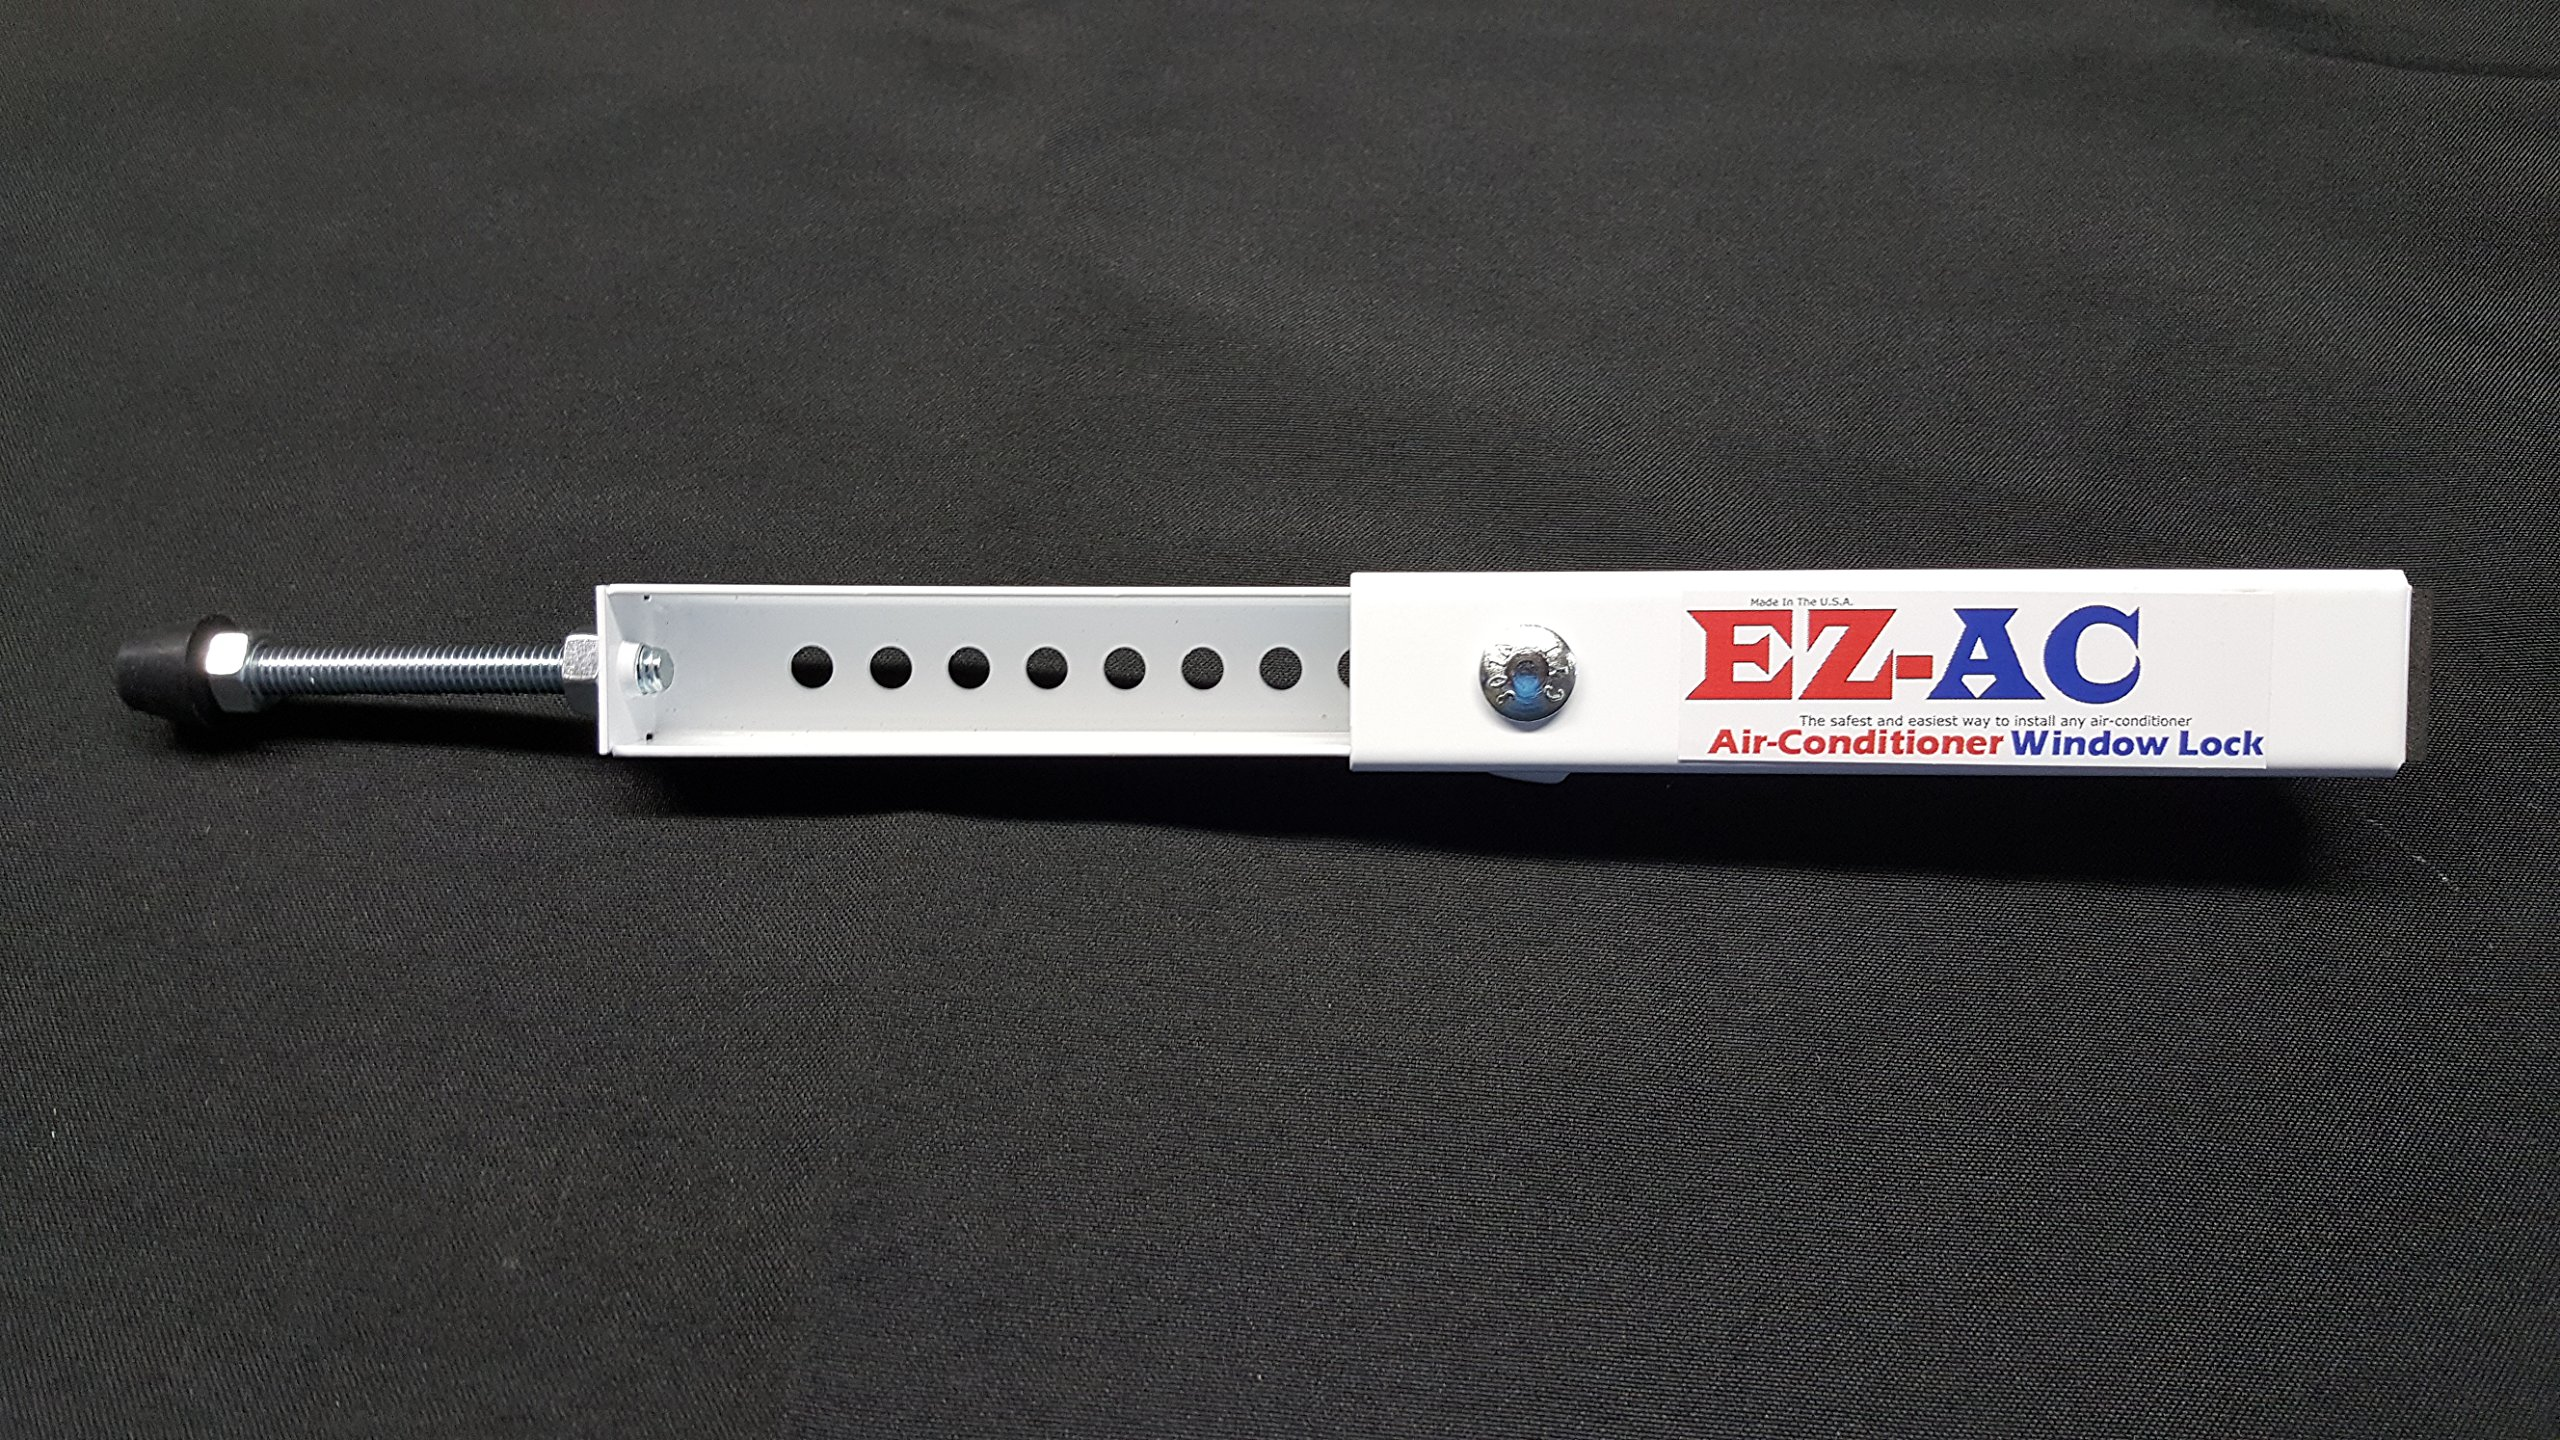 EZ-AC Air-Conditioner Security Window Lock Wedge (Made in the U.S.A.) Extends 7 1/2''-14''